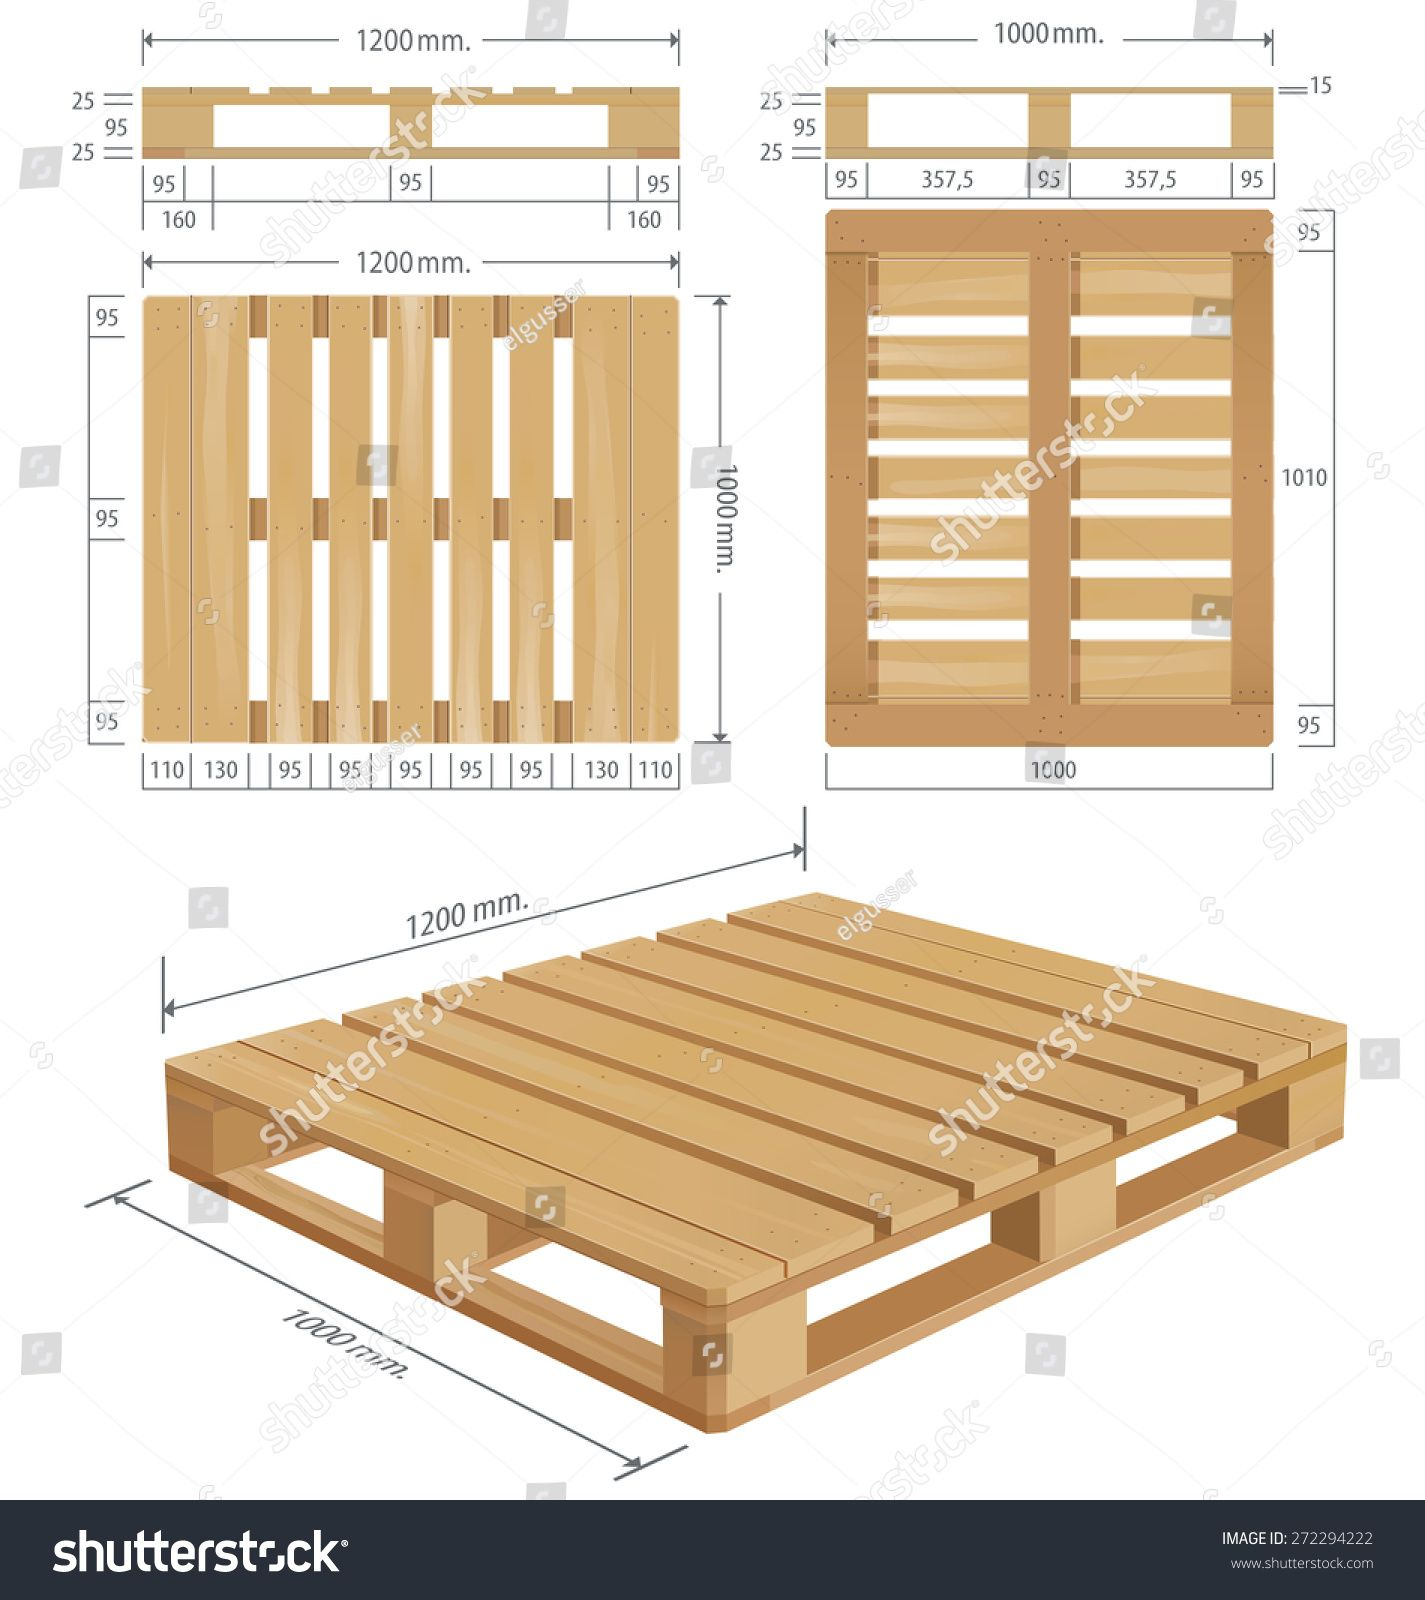 American Wooden Pallet In Perspective Front And Side View With Dimensions Wood Pallet Dimensions Pallet Dimensions Pallet Patio Furniture